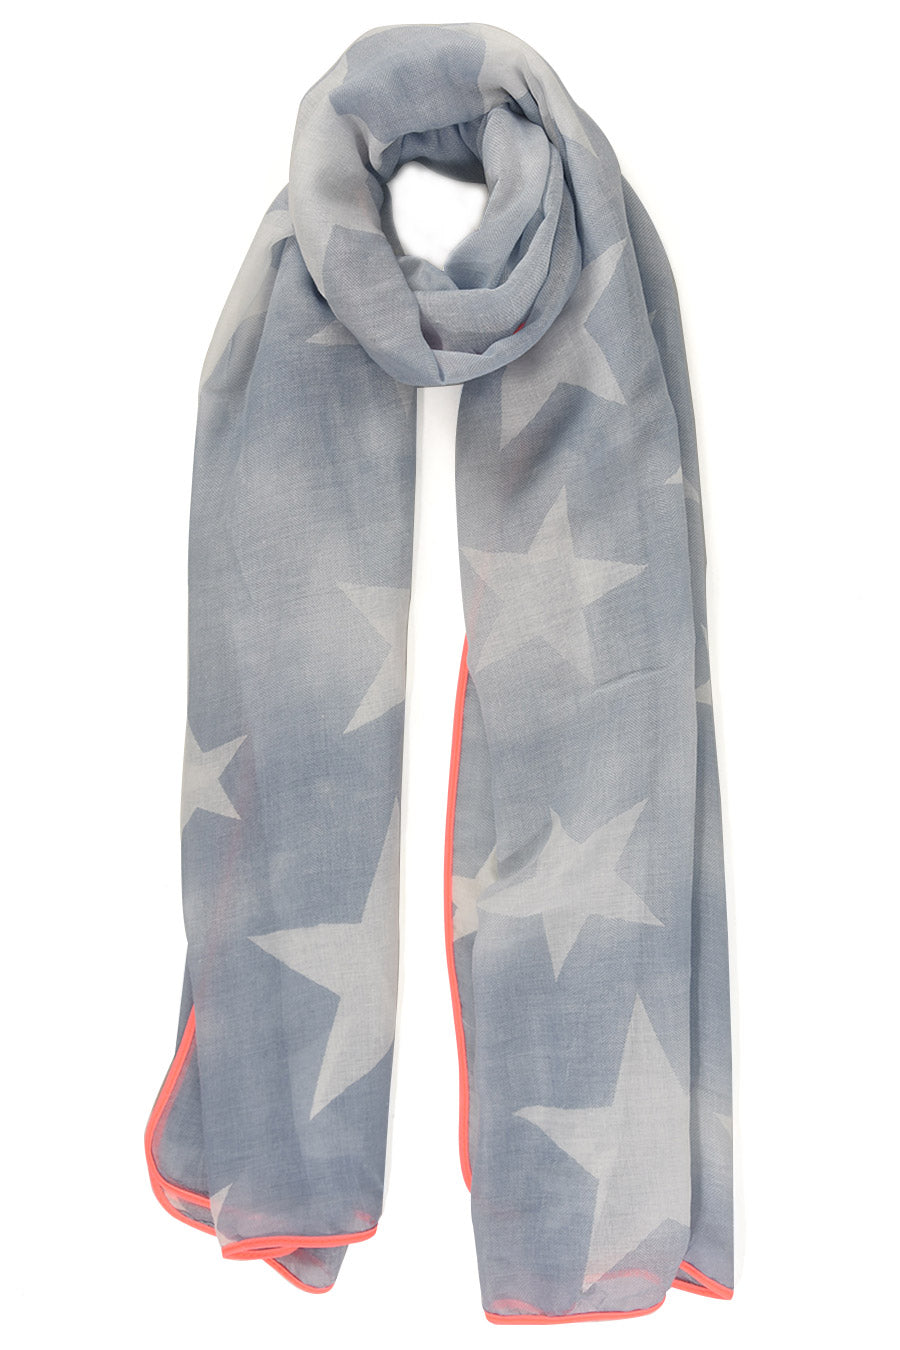 Denim Blue Scarf with White Stars & Neon Pink Trim